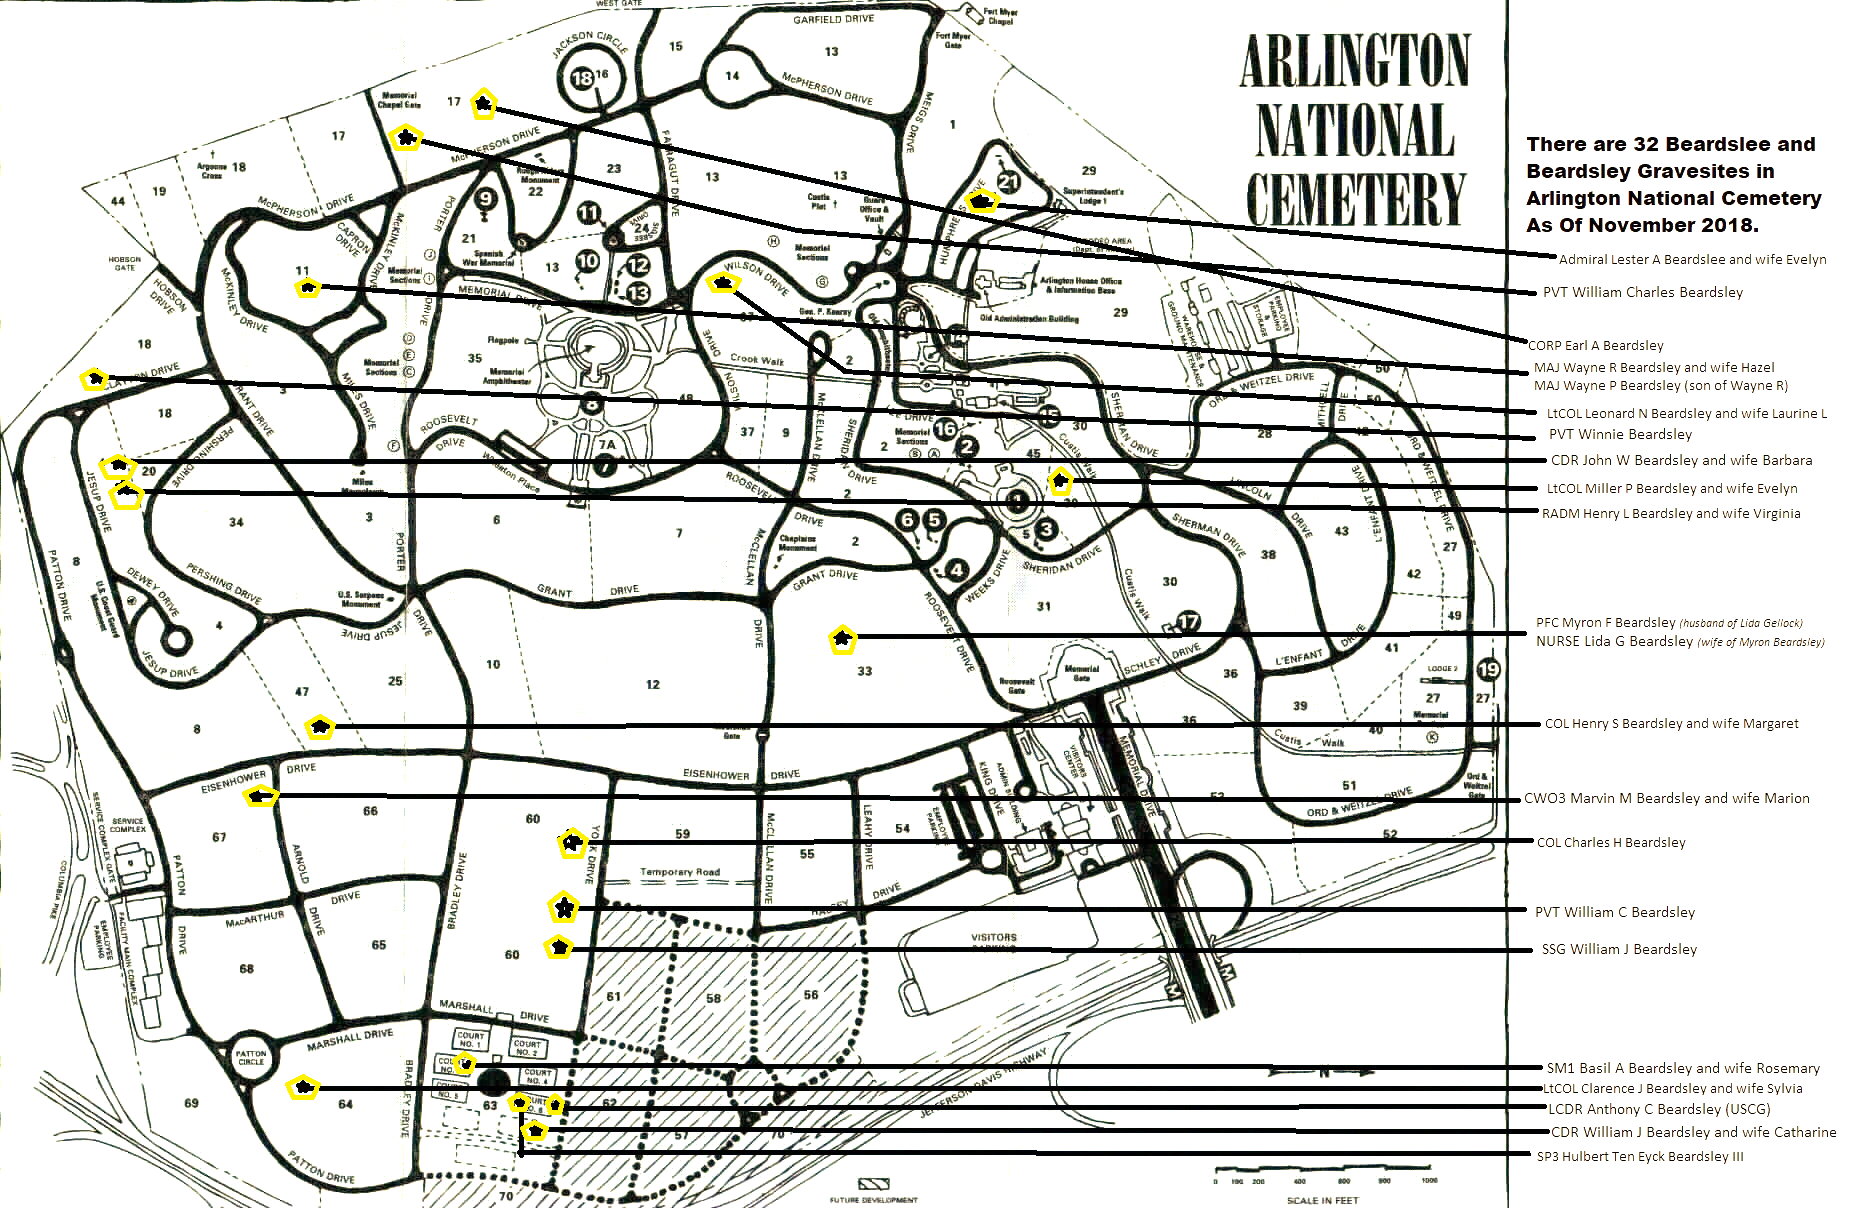 Map of Arlington National Cemetery with Beardslee and Beardsley ...